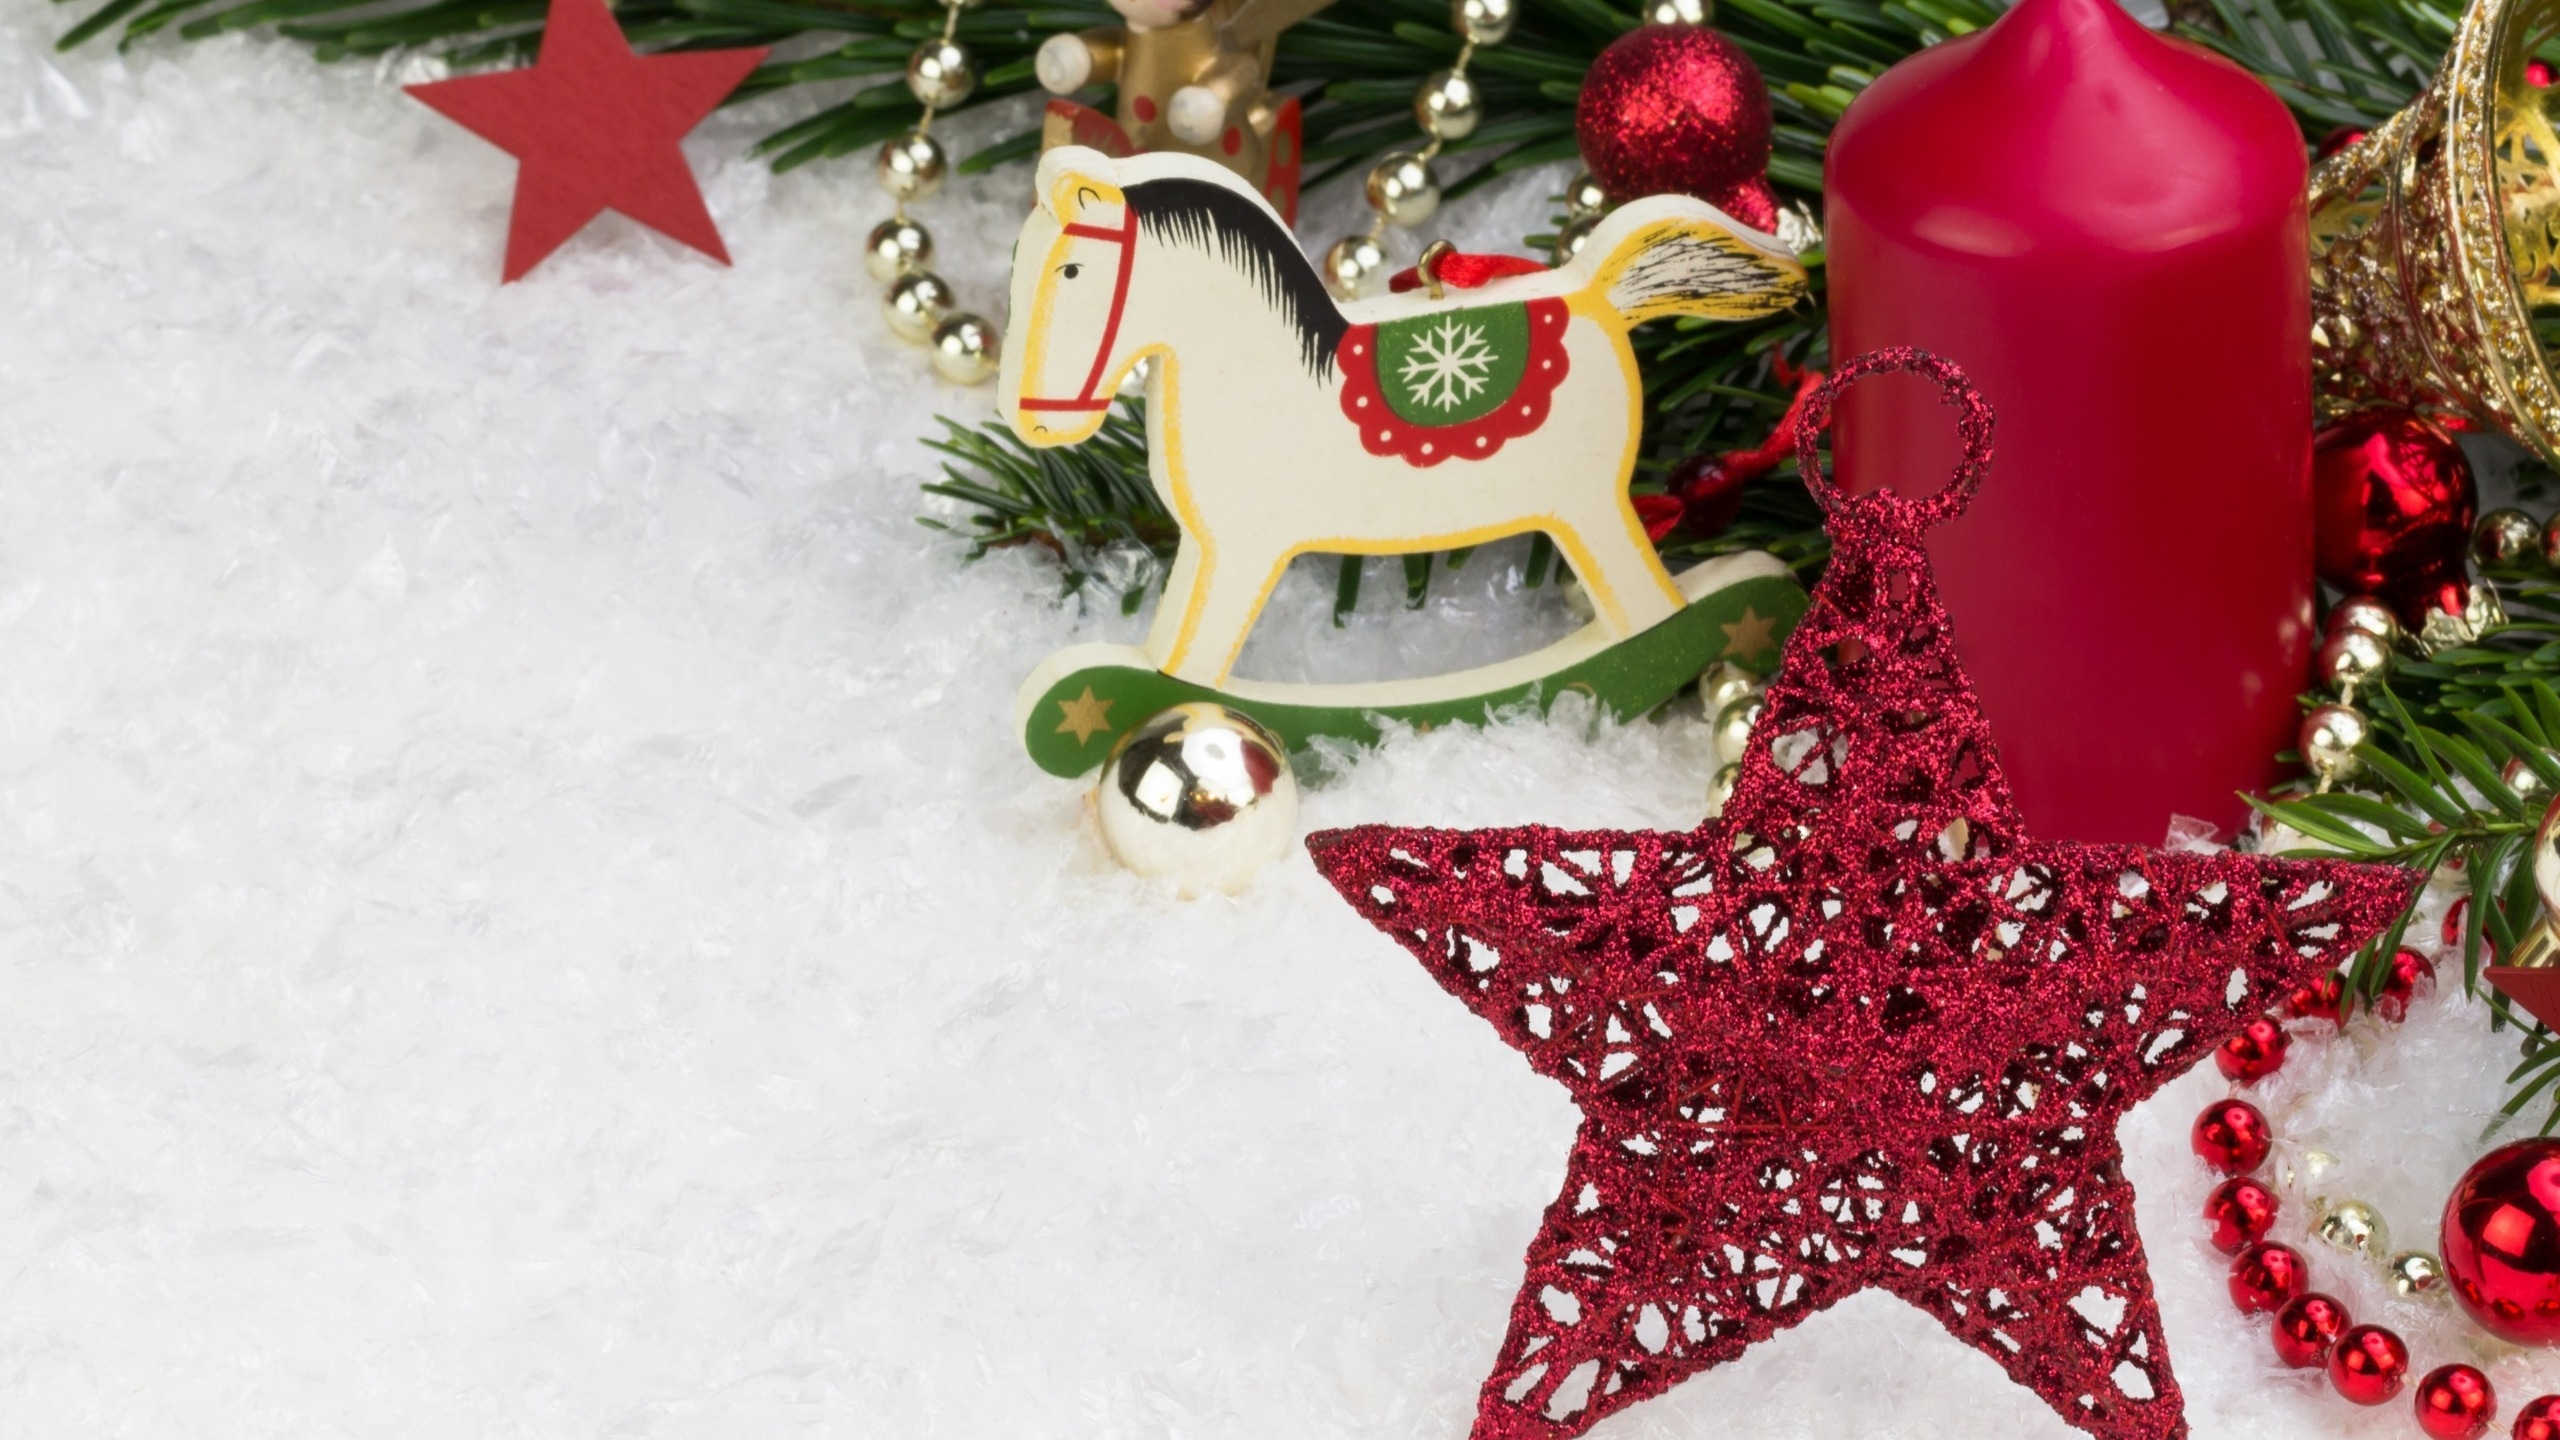 2560x1440 Small Christmas Ornaments YouTube Channel Cover